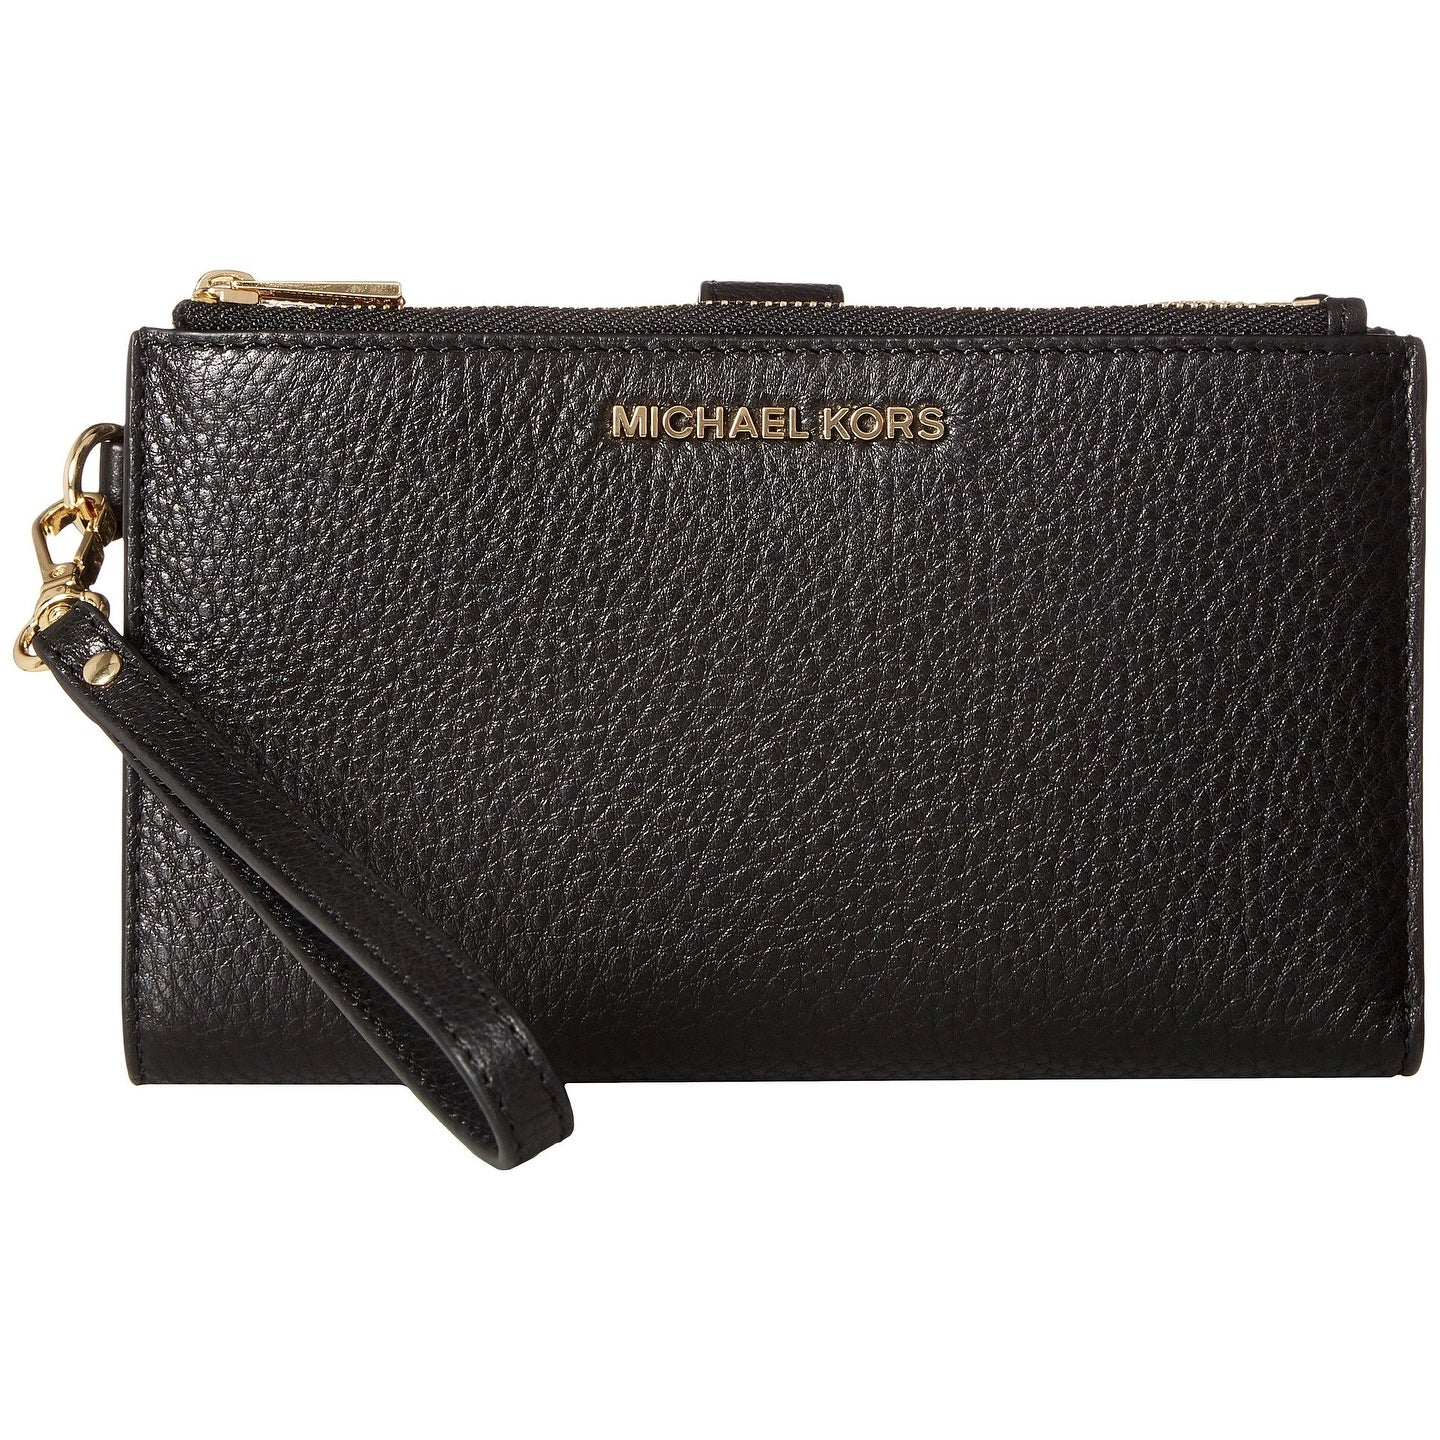 73bdfcdd75c3f7 Buy Wristlet Michael Kors Women's Wallets Online at Overstock | Our ...